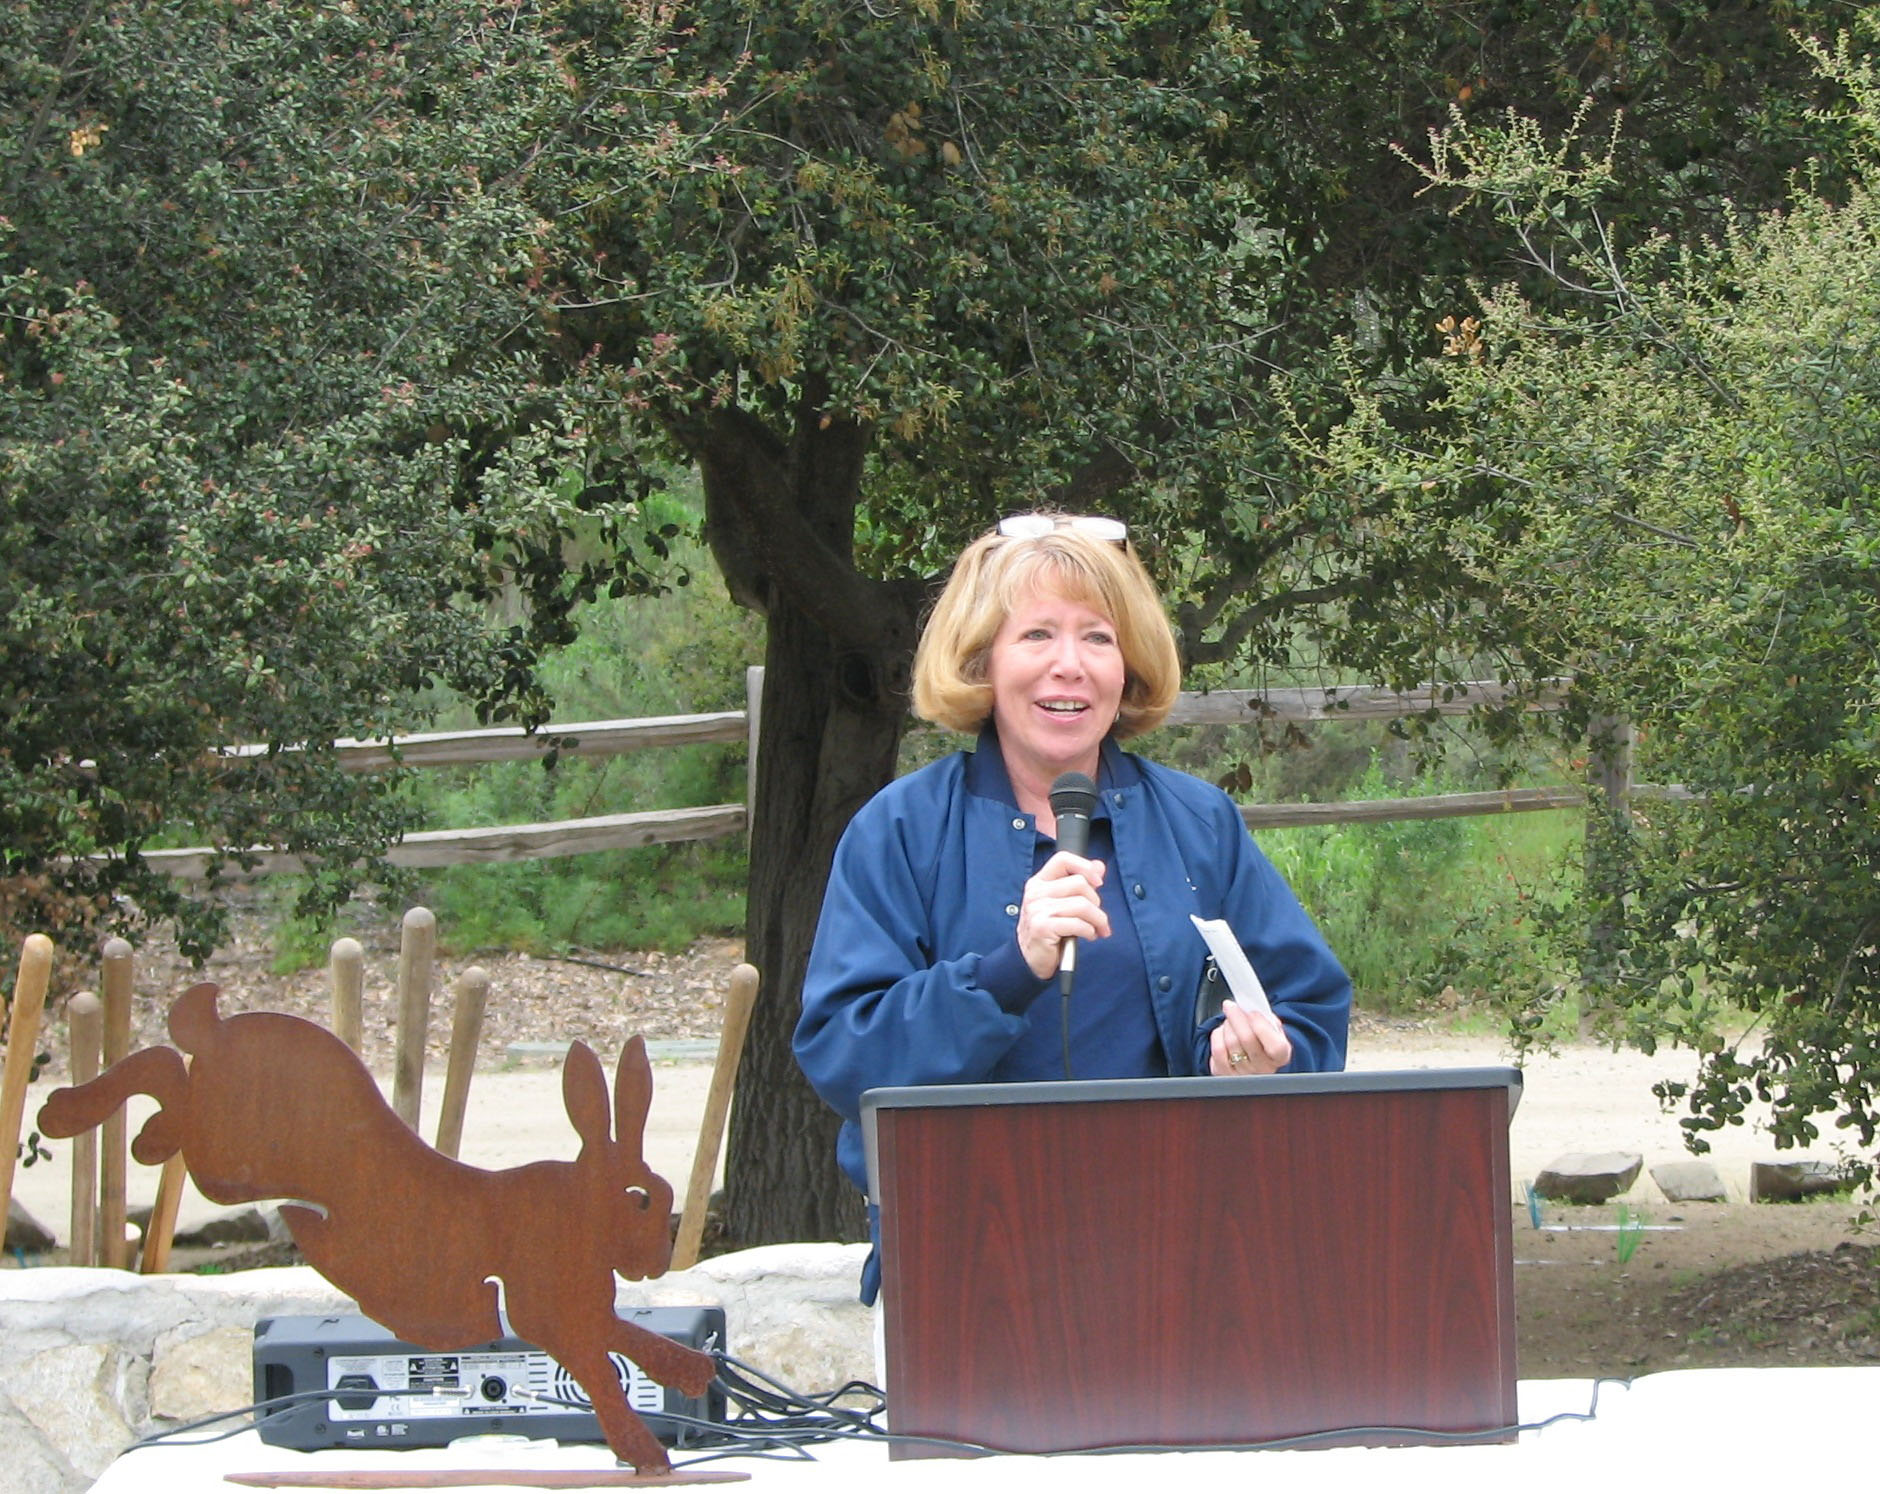 Susan J. Varty speaks at EFRR